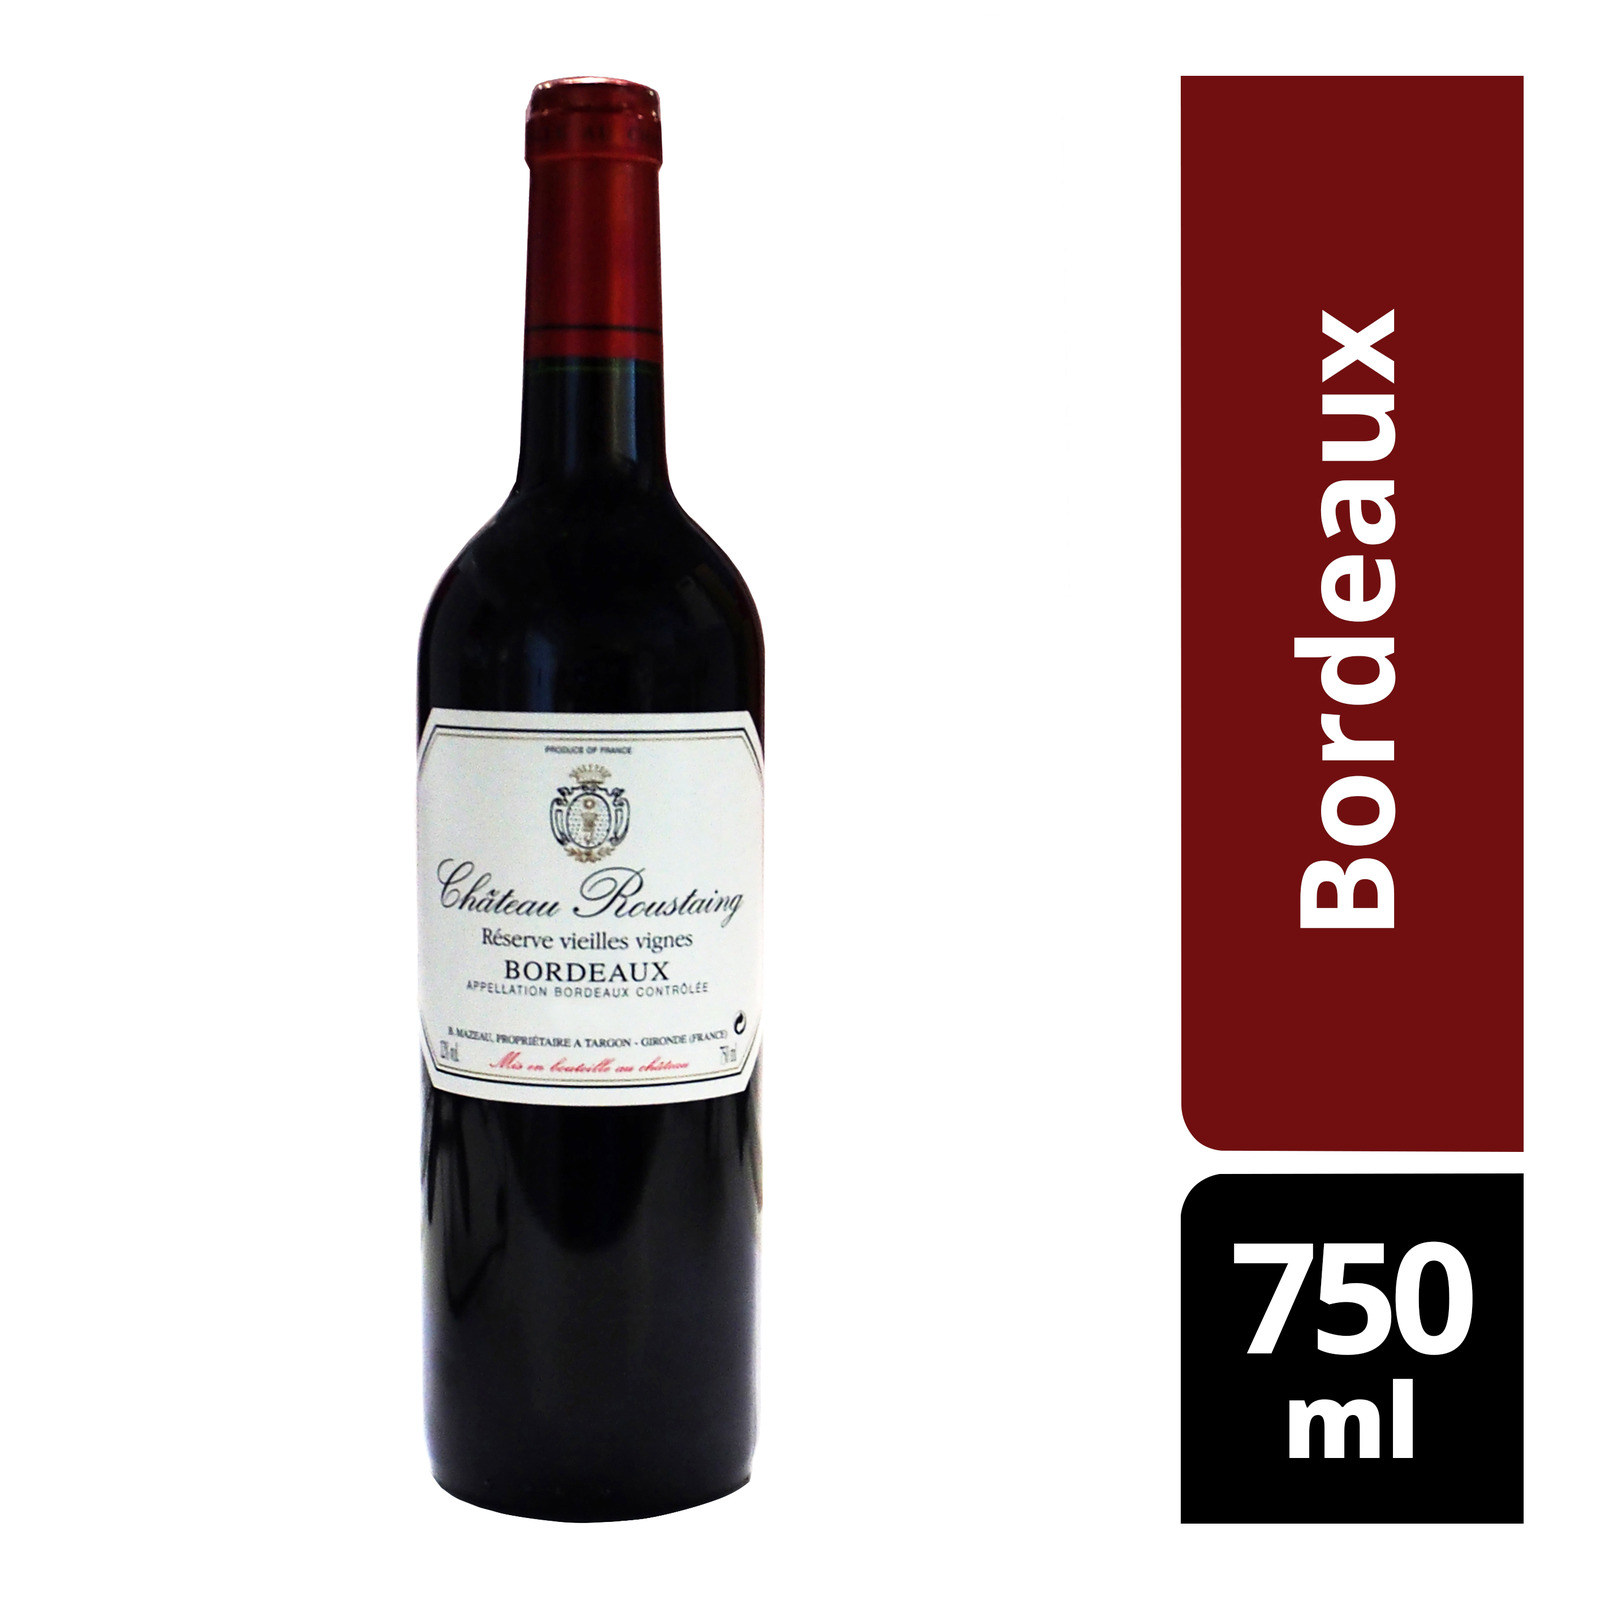 Chateau Roustaing Red Wine - Bordeaux